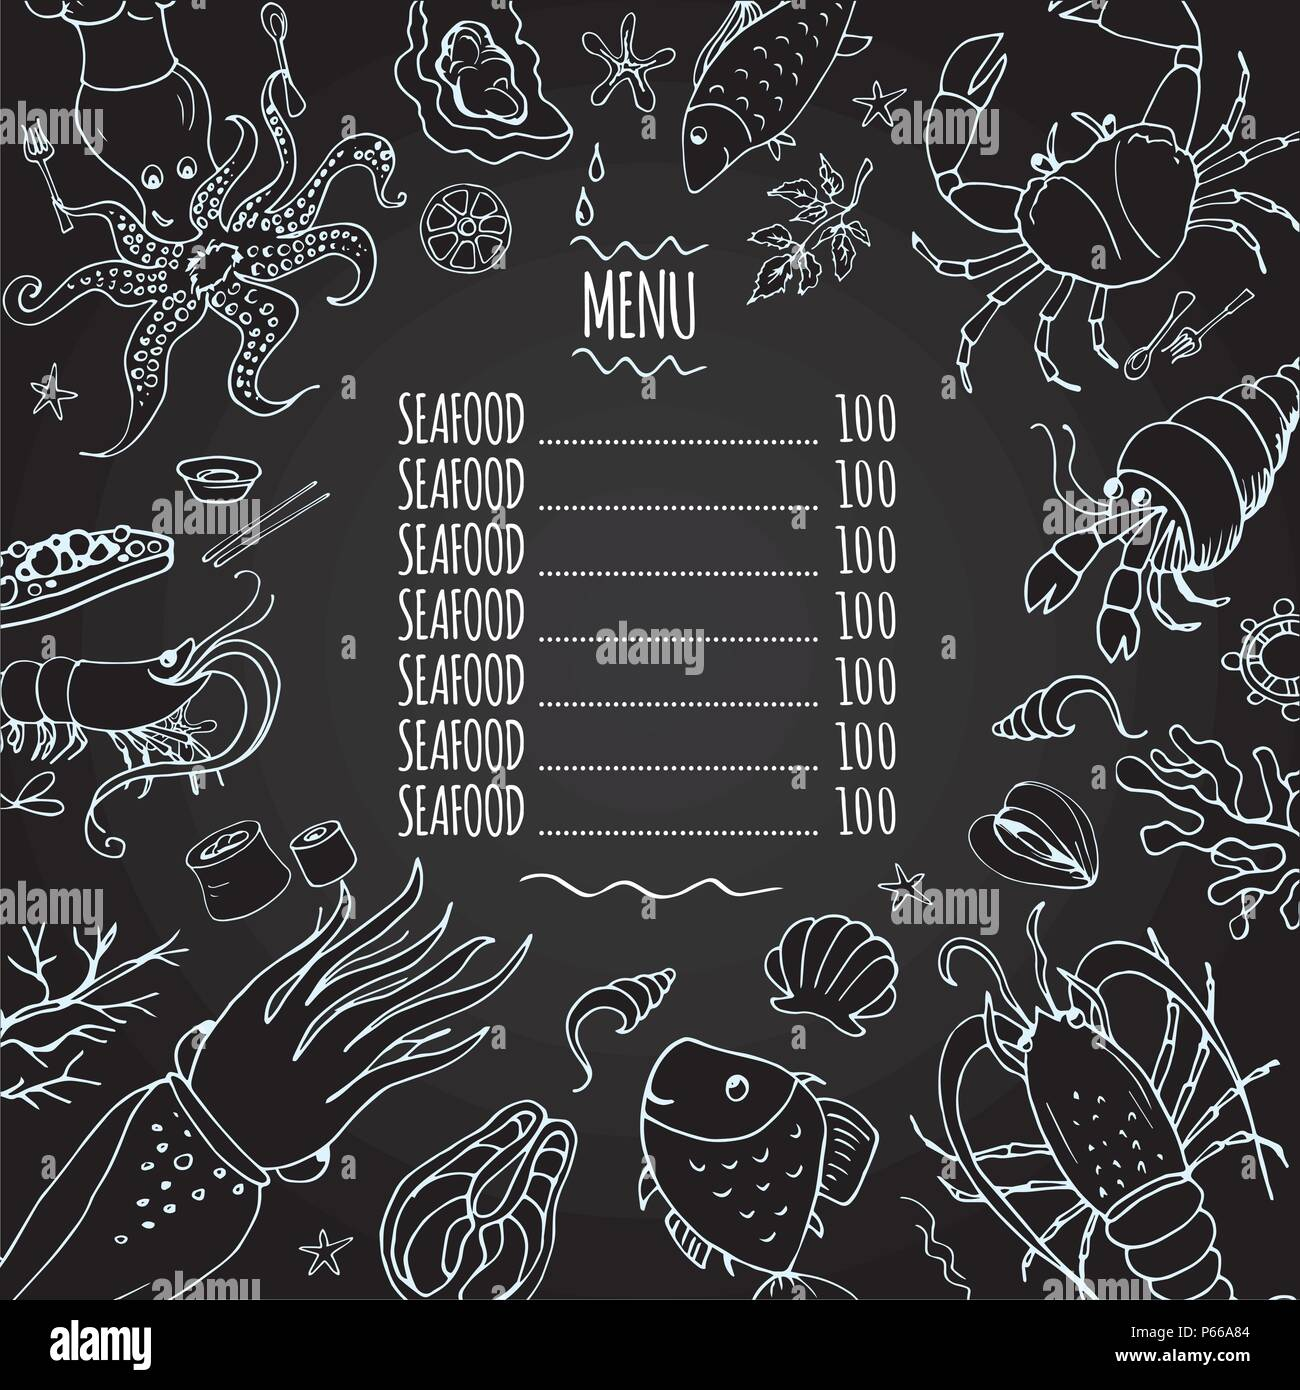 Template seafood menu, great for restaurants, menu, websites ...